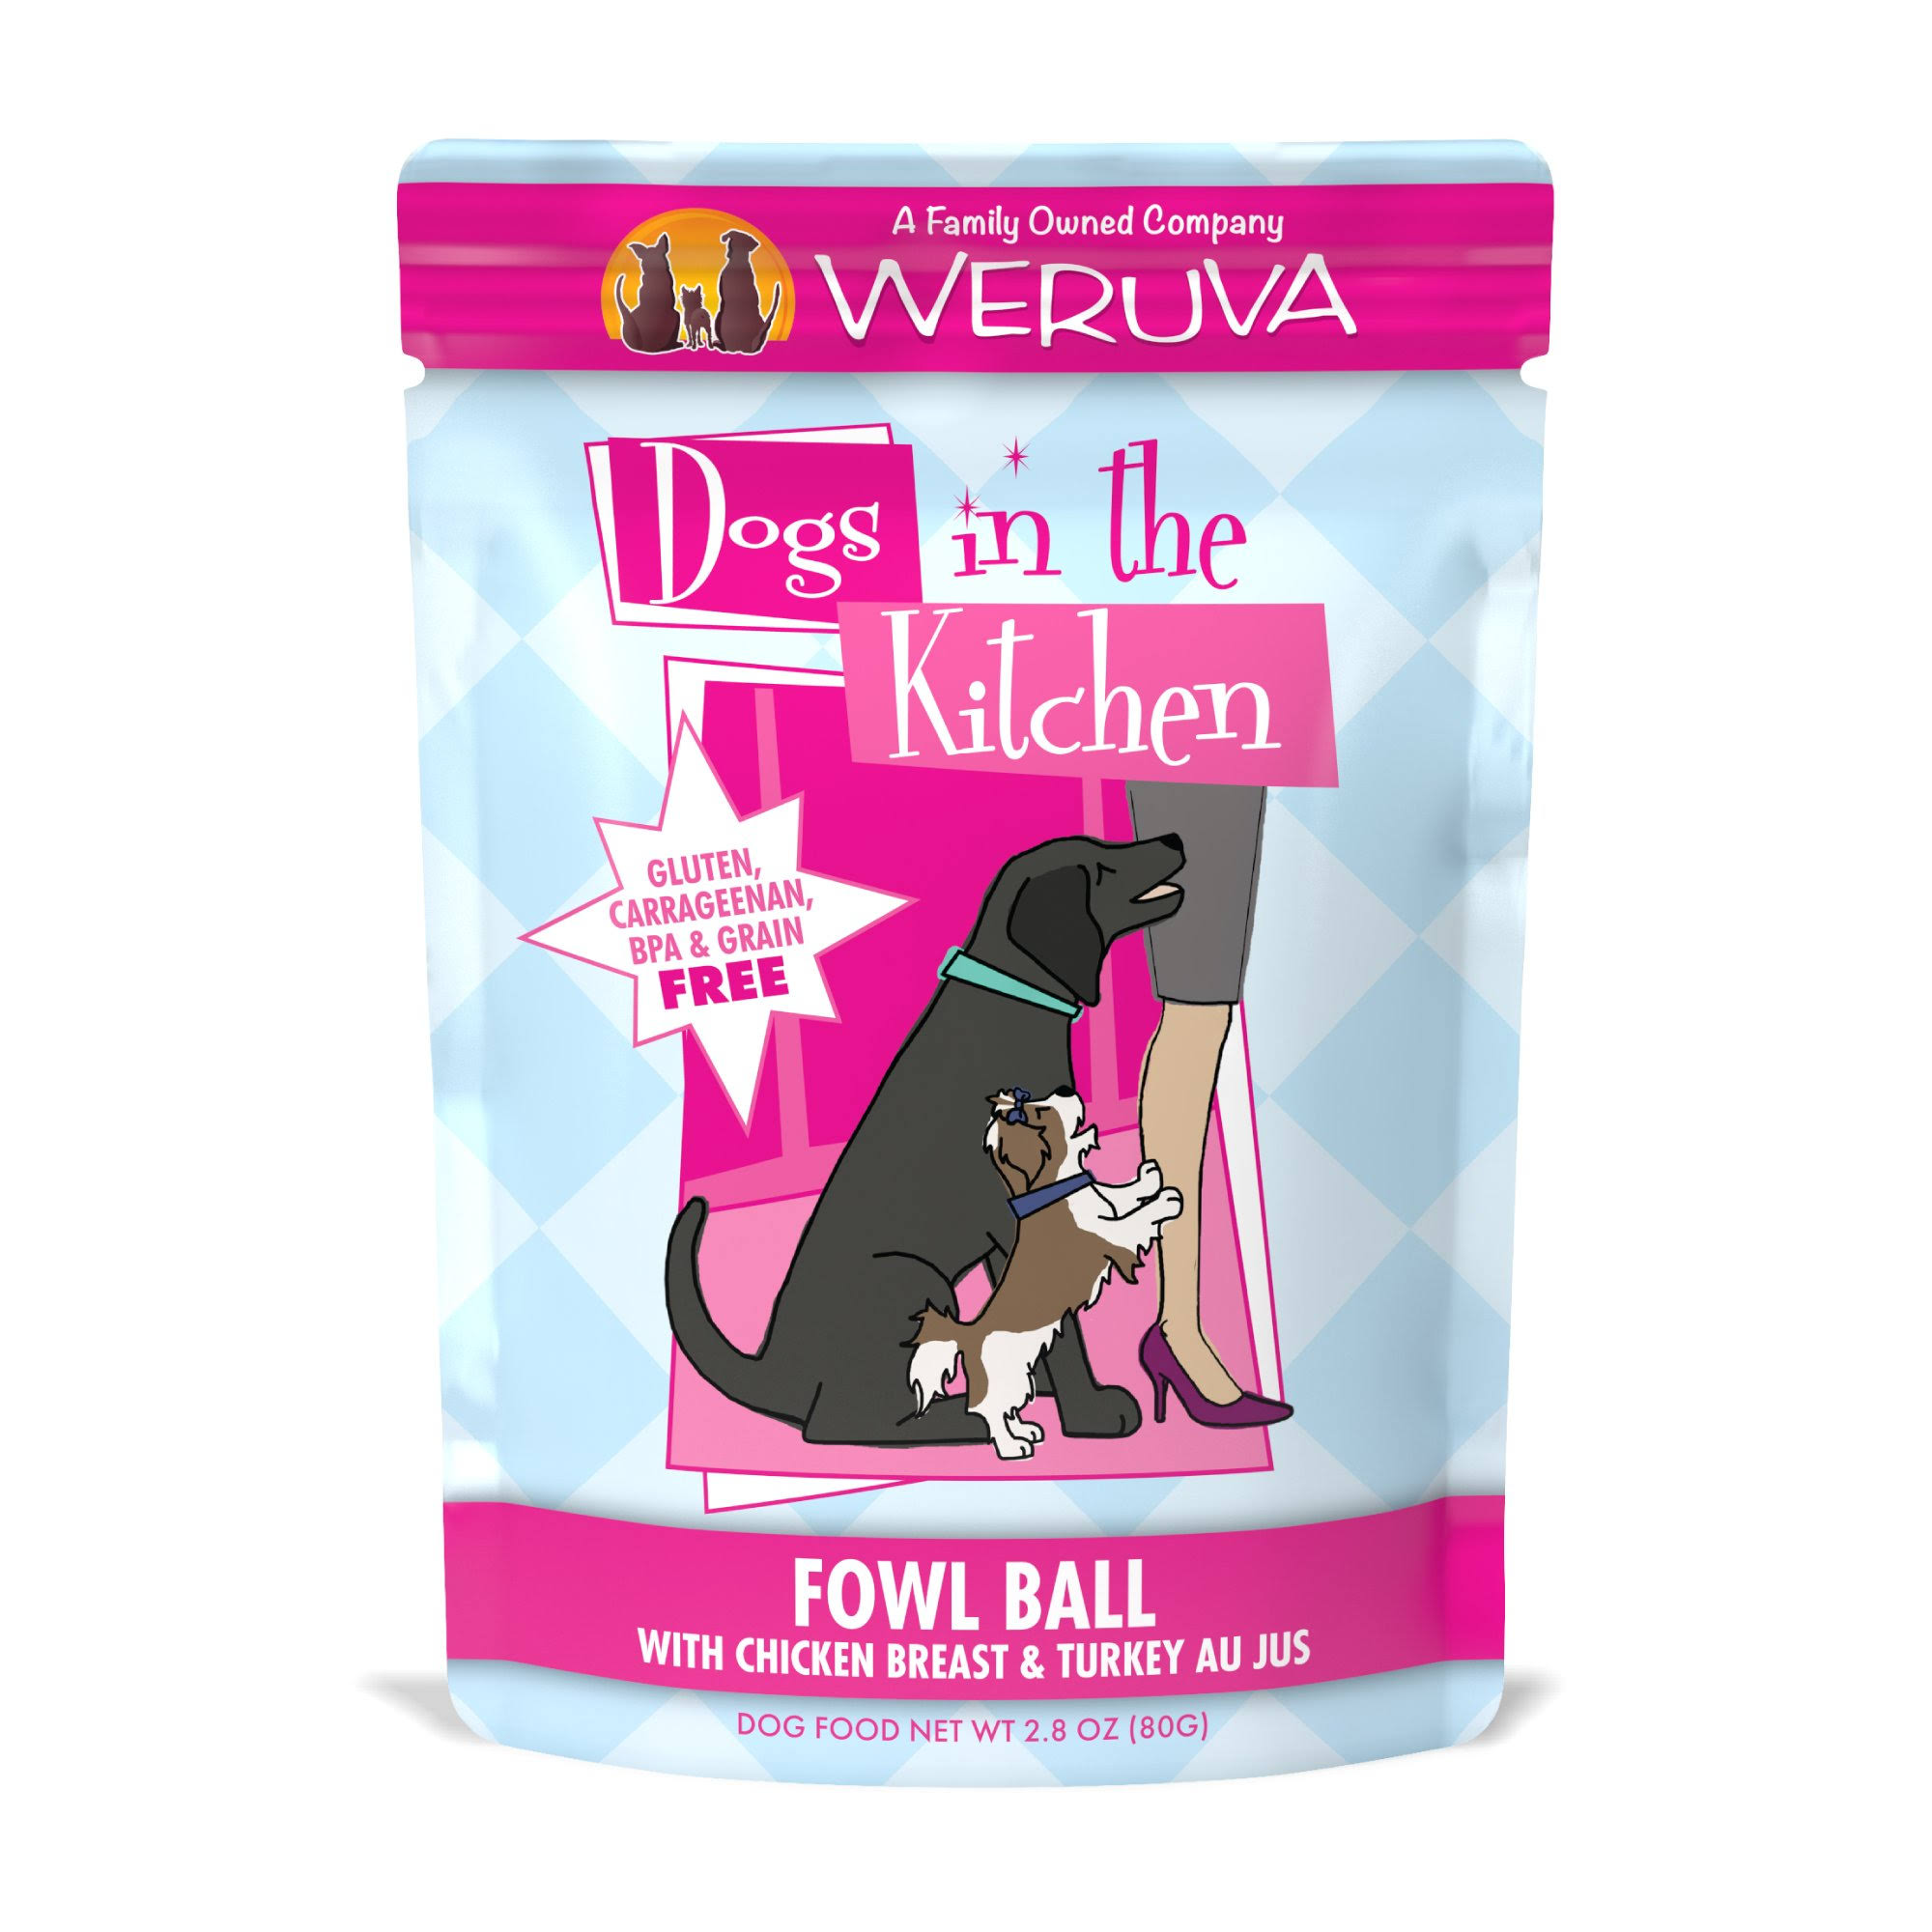 Weruva Dogs in the Kitchen Fowl Ball - Chicken Breast & Turkey